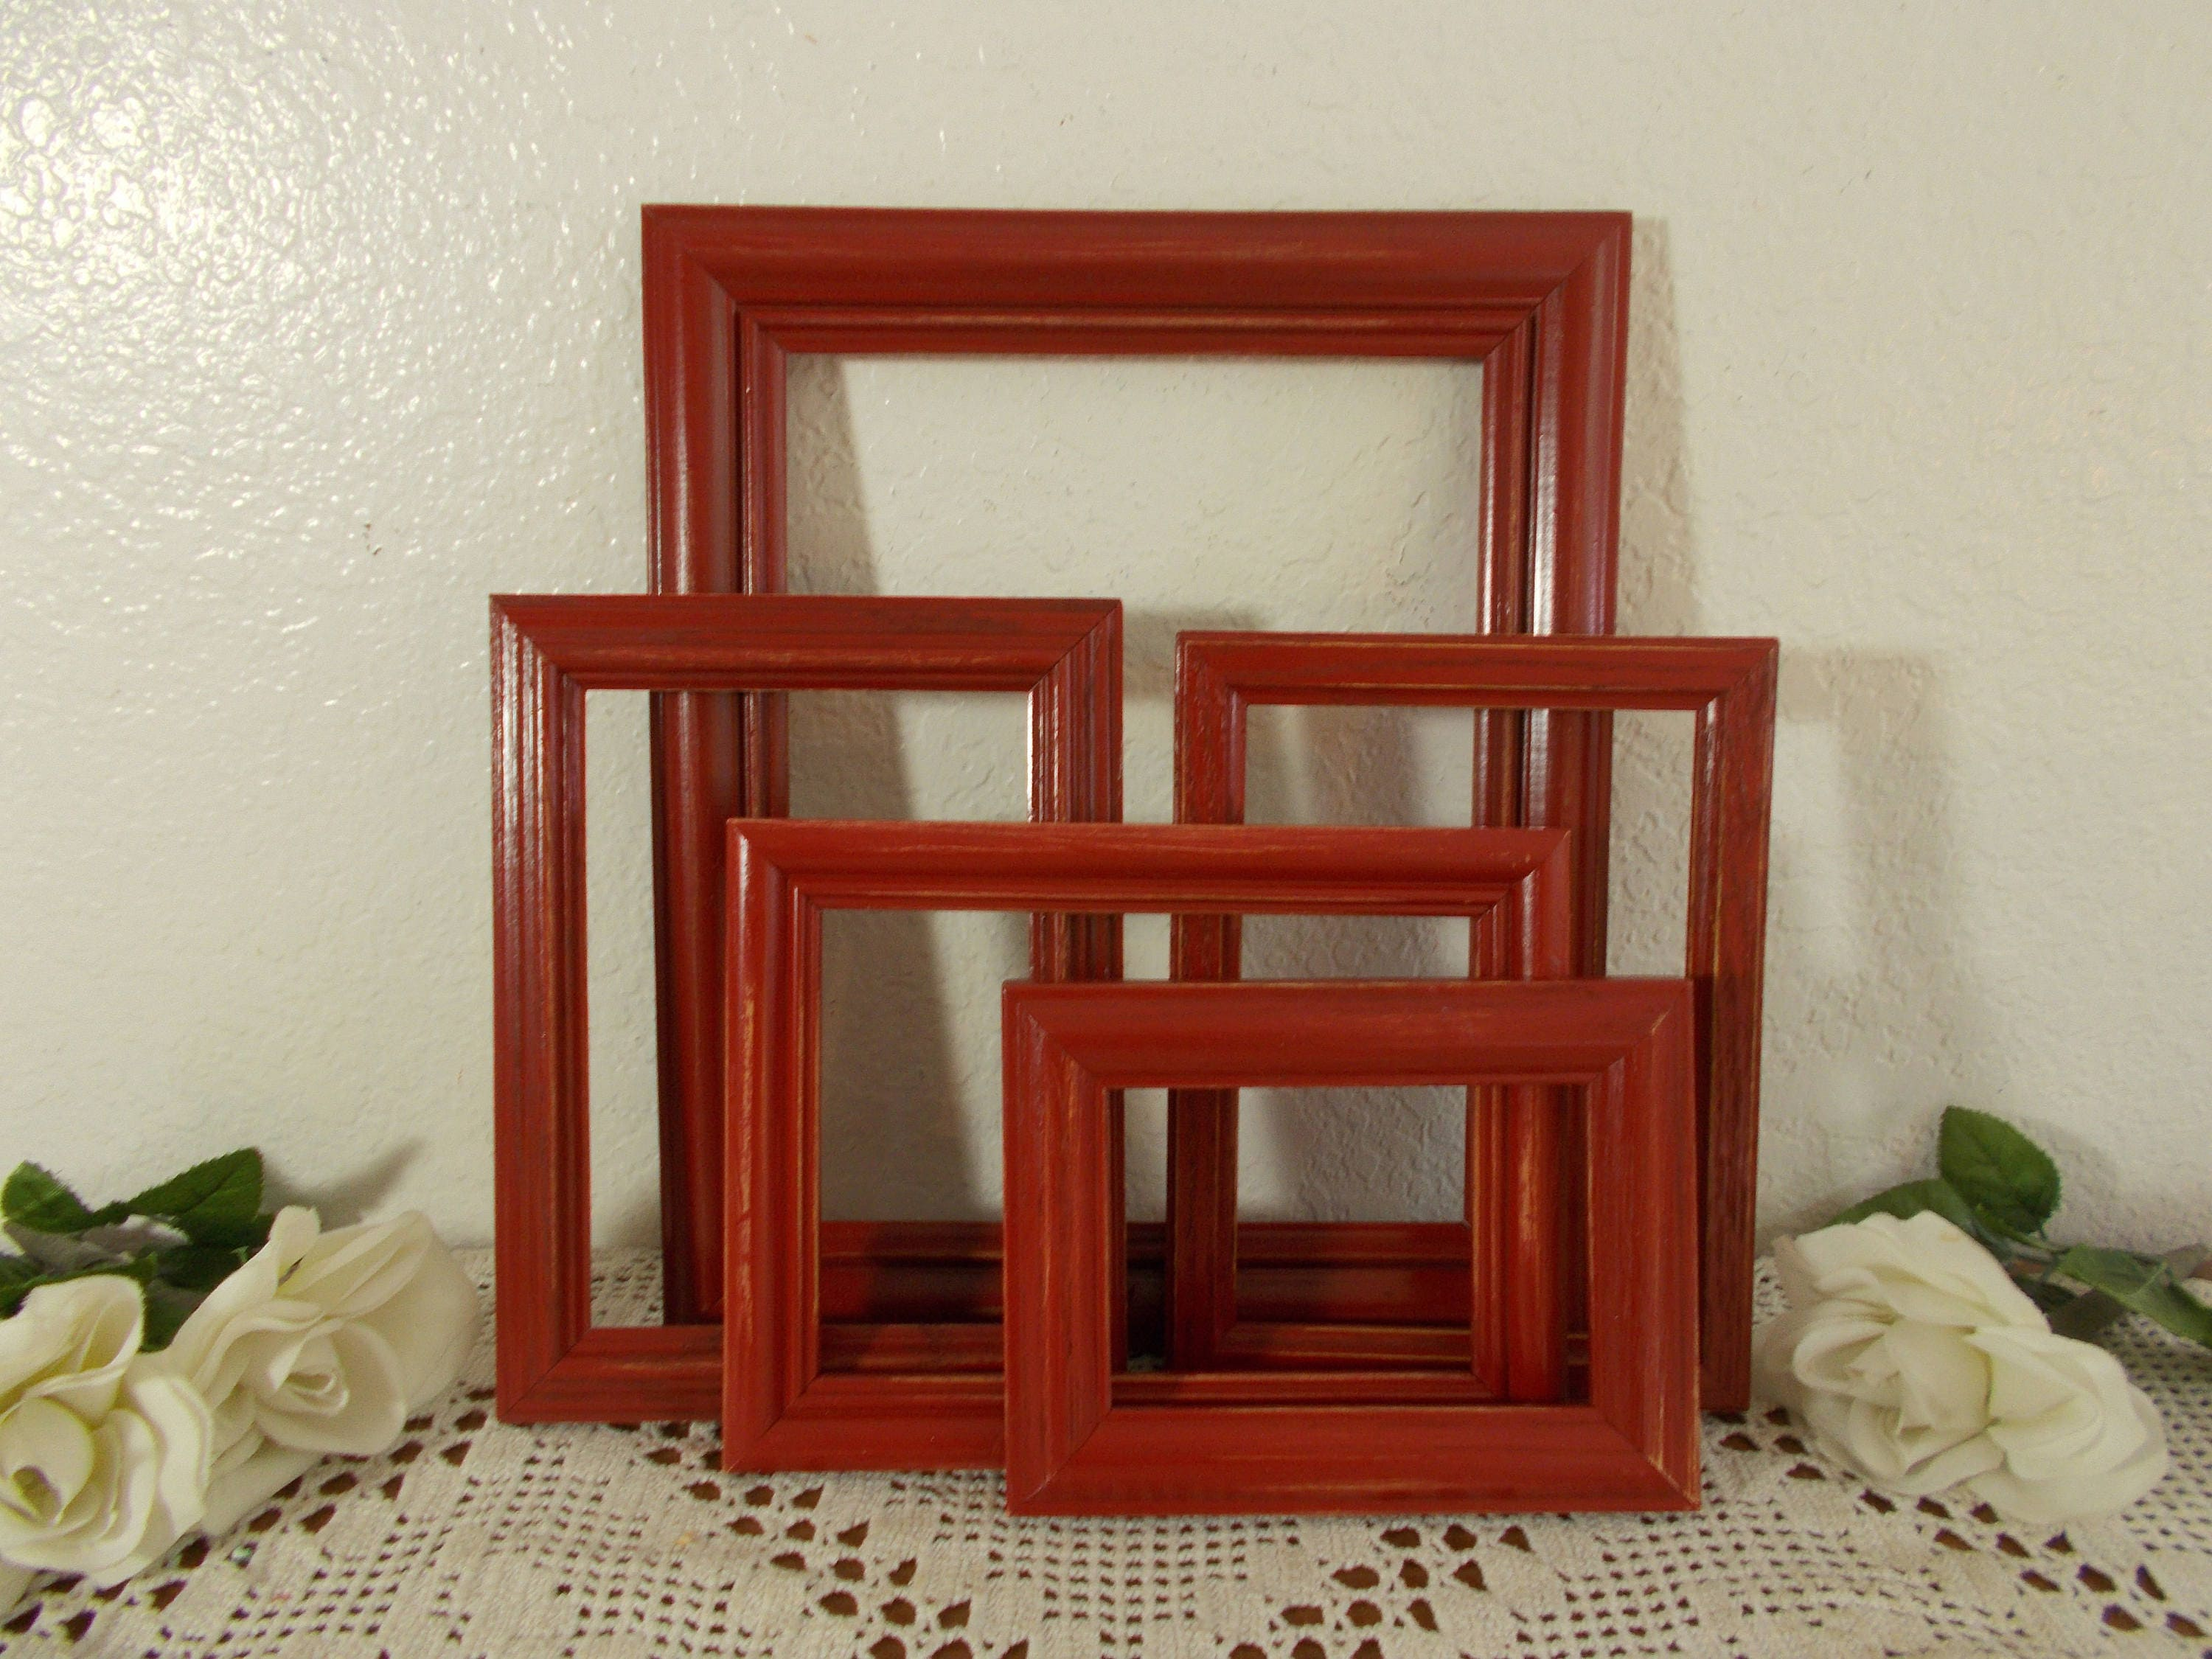 Rustic red picture frame set up cycled vintage wood photo zoom jeuxipadfo Image collections